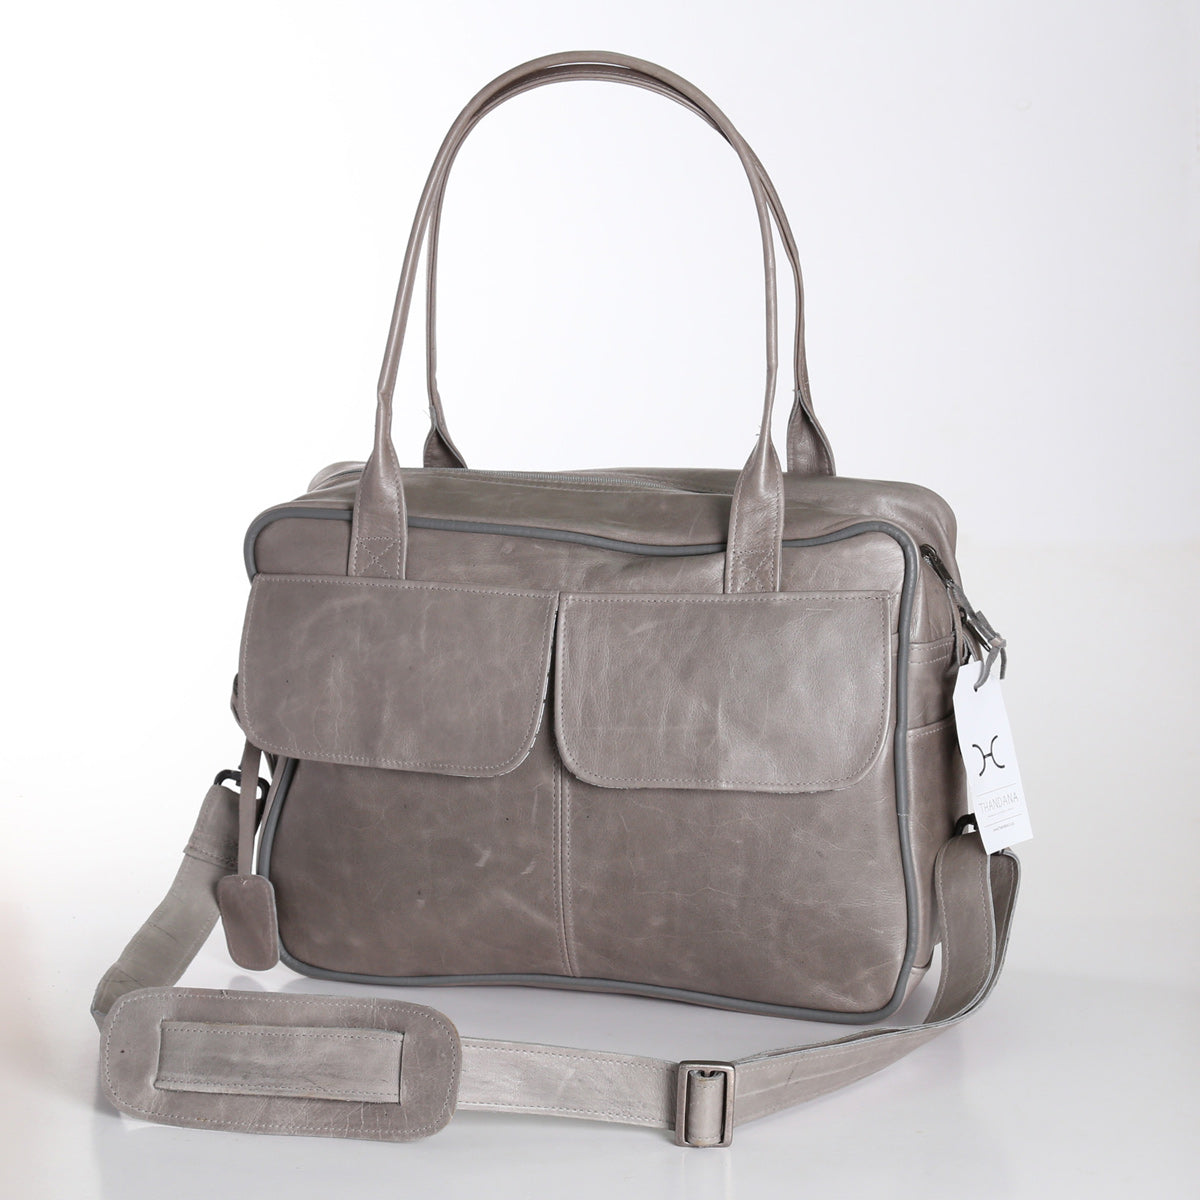 Thandana Briefcase - Grey - Zufrique Boutique